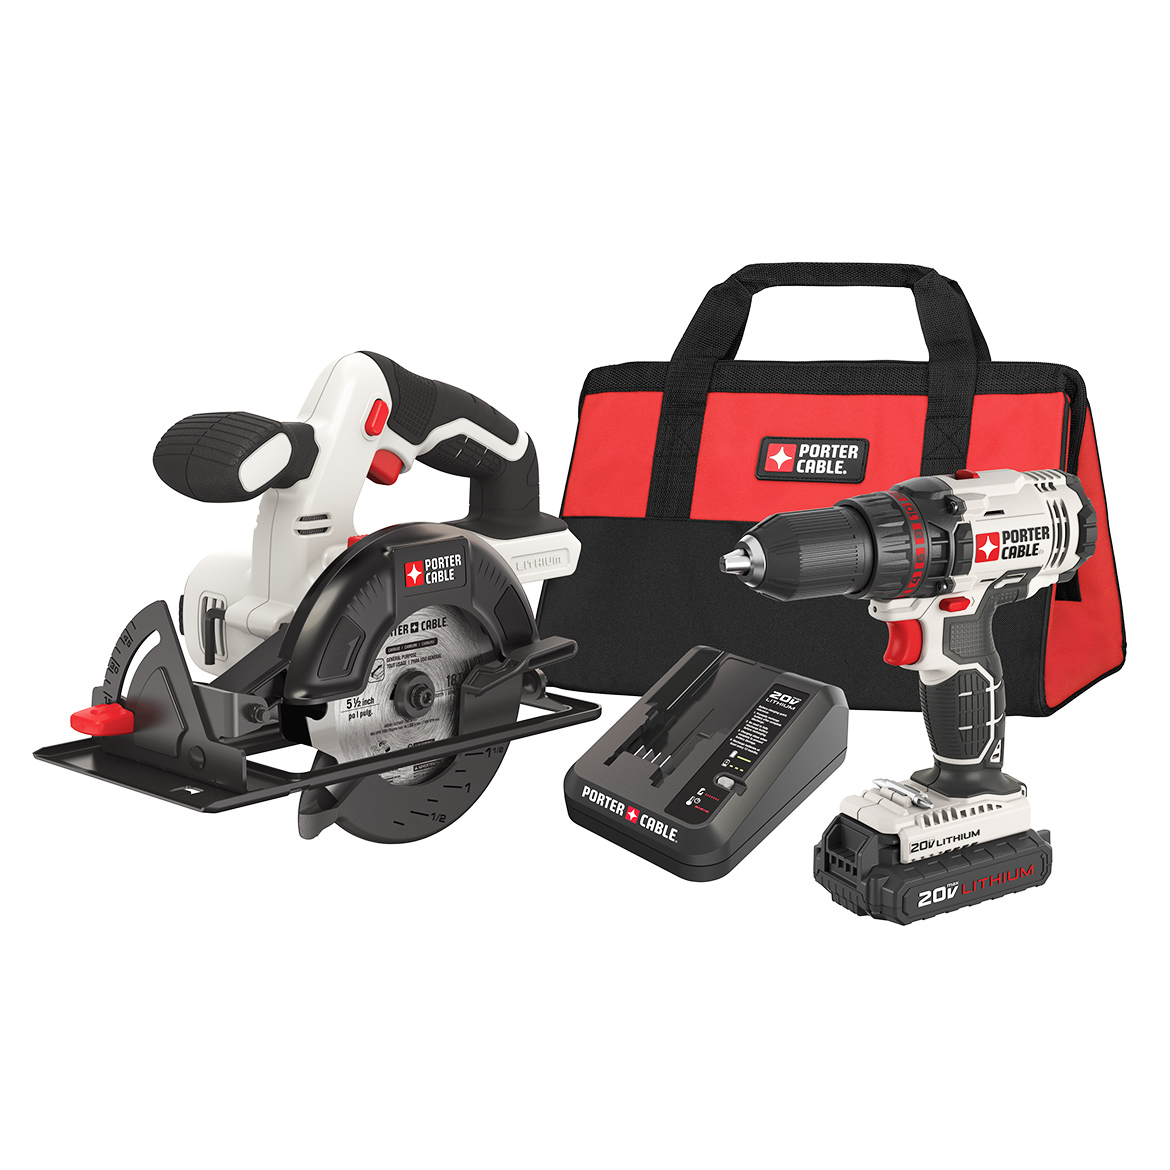 Porter Cable PCCK612L2 20-Volt 1.3Ah Drill Driver and Circular Saw Kit by